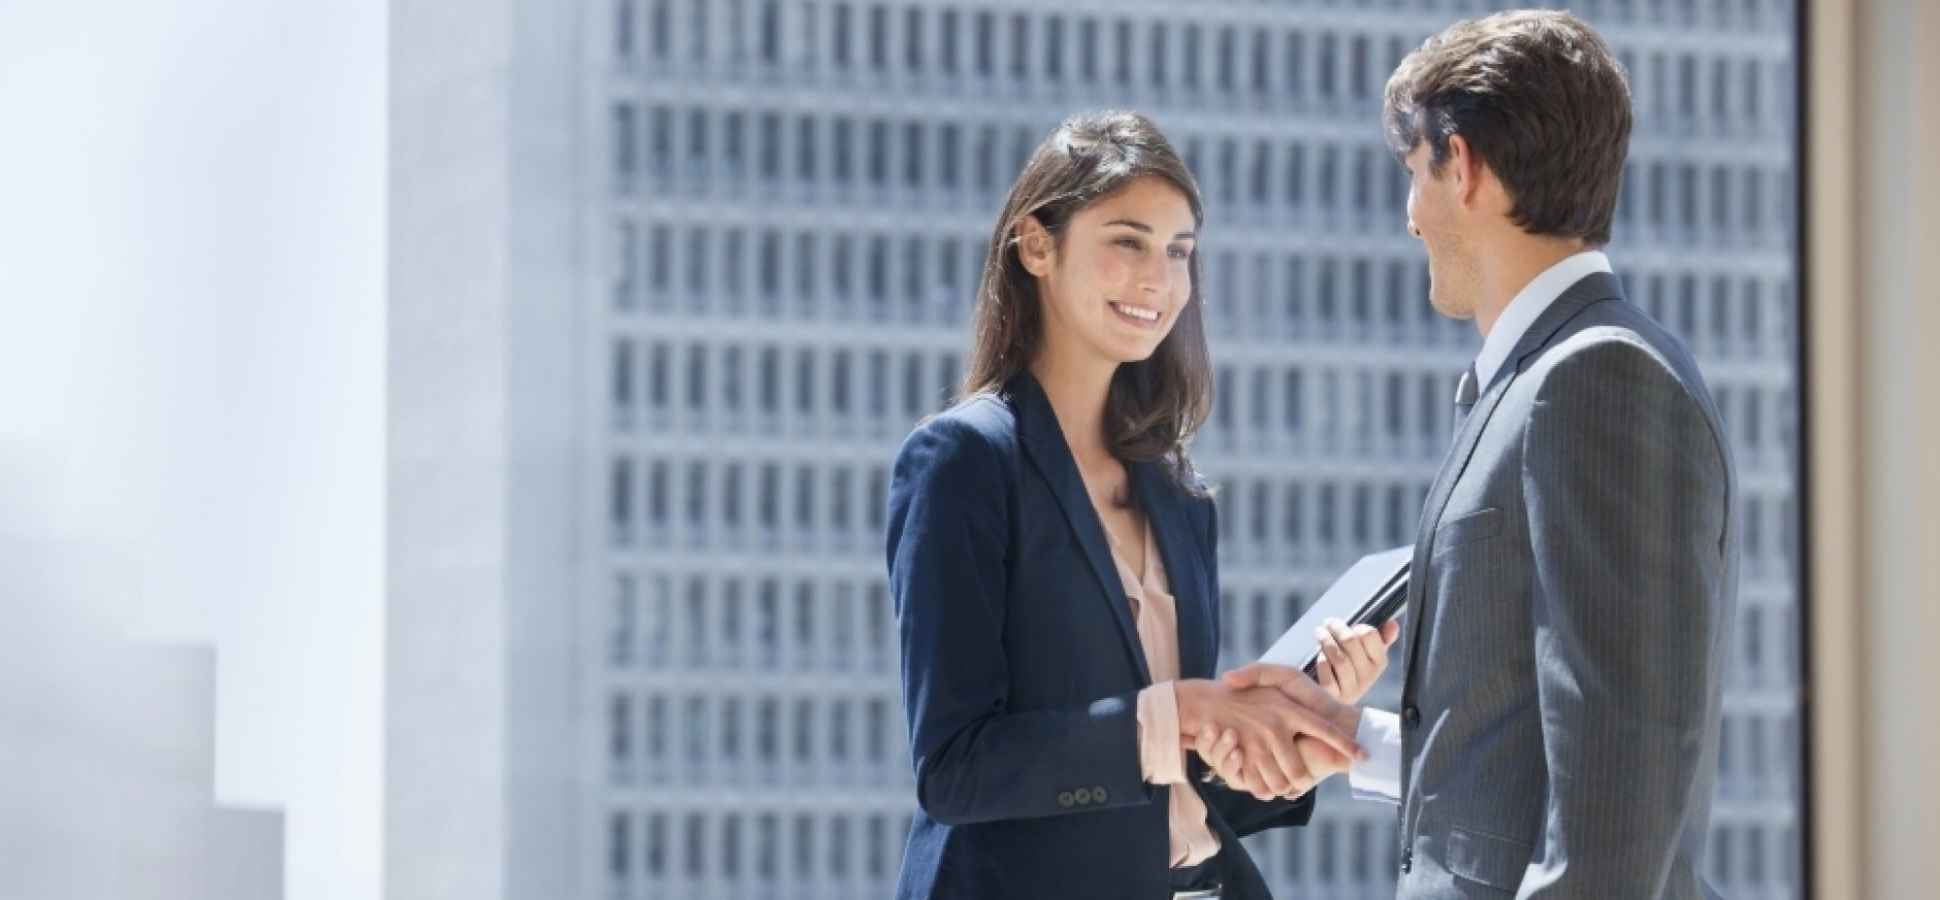 17 Fast and Simple Tips That Always Improve Your First Impression